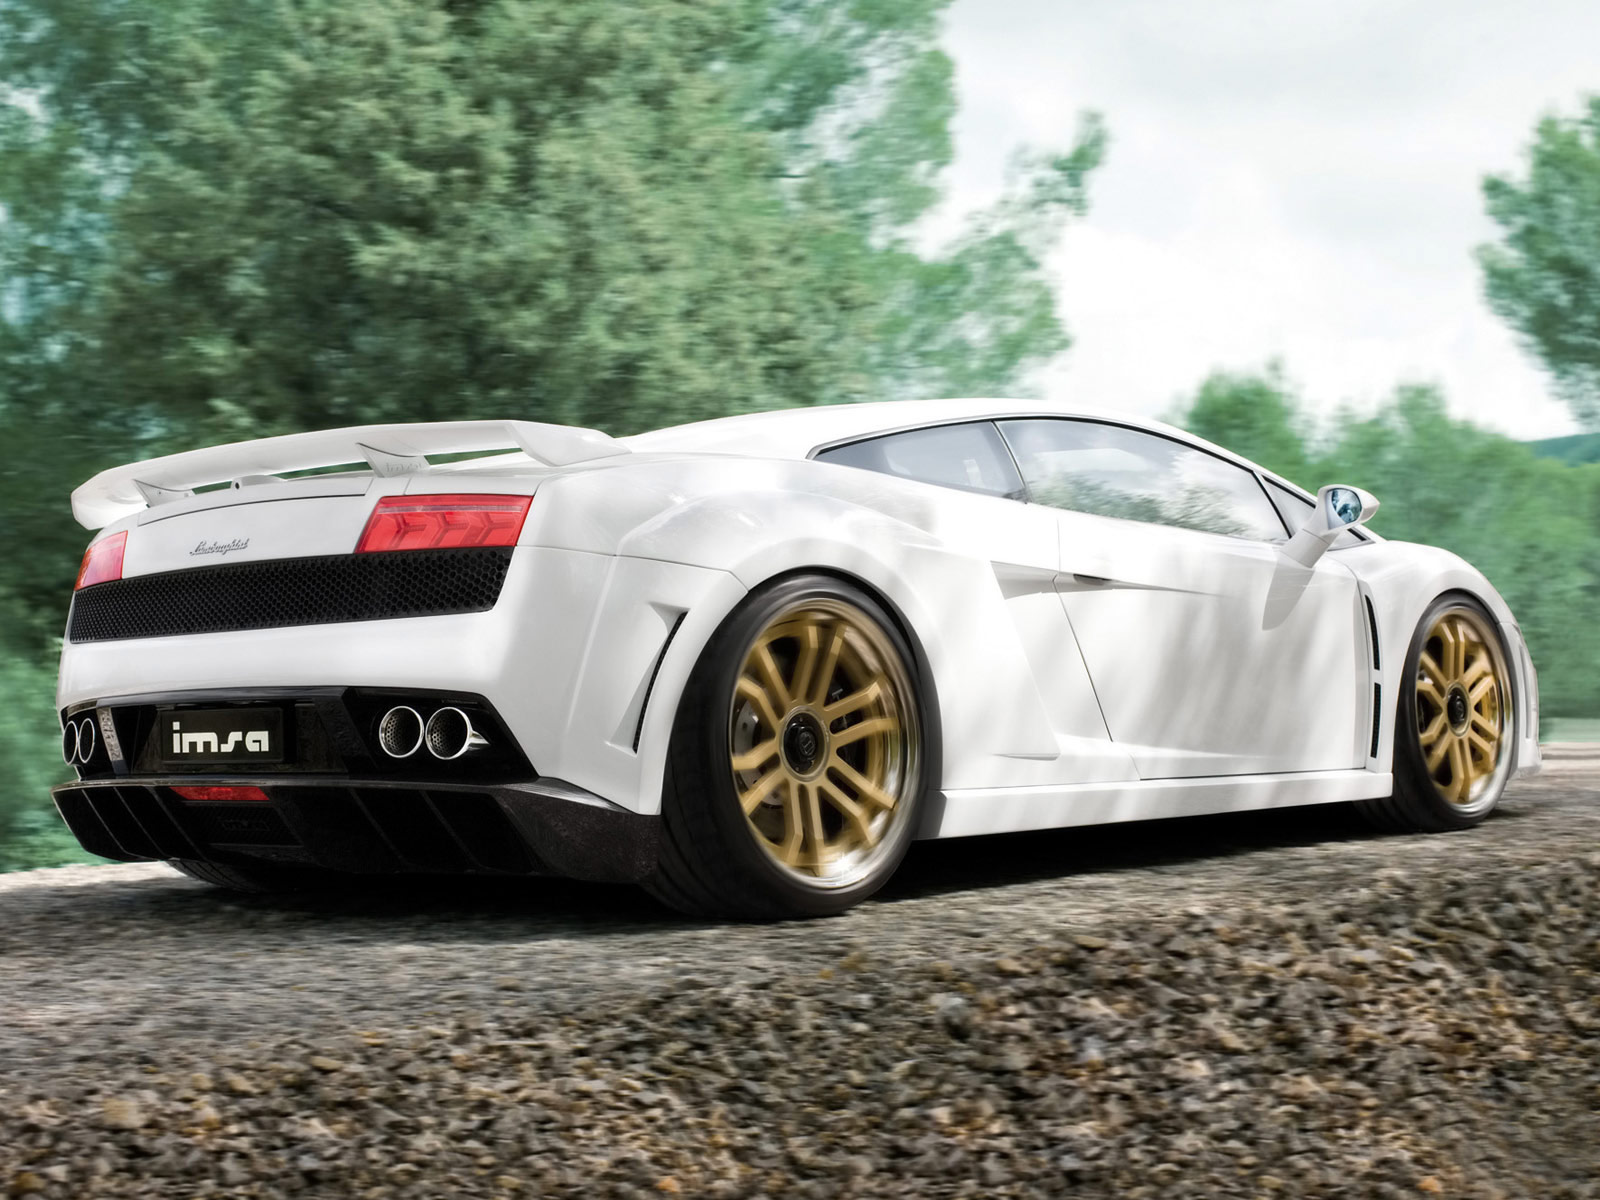 2009 LAMBORGHINI Gallardo LP560-4 IMSA GTV Wallpapers